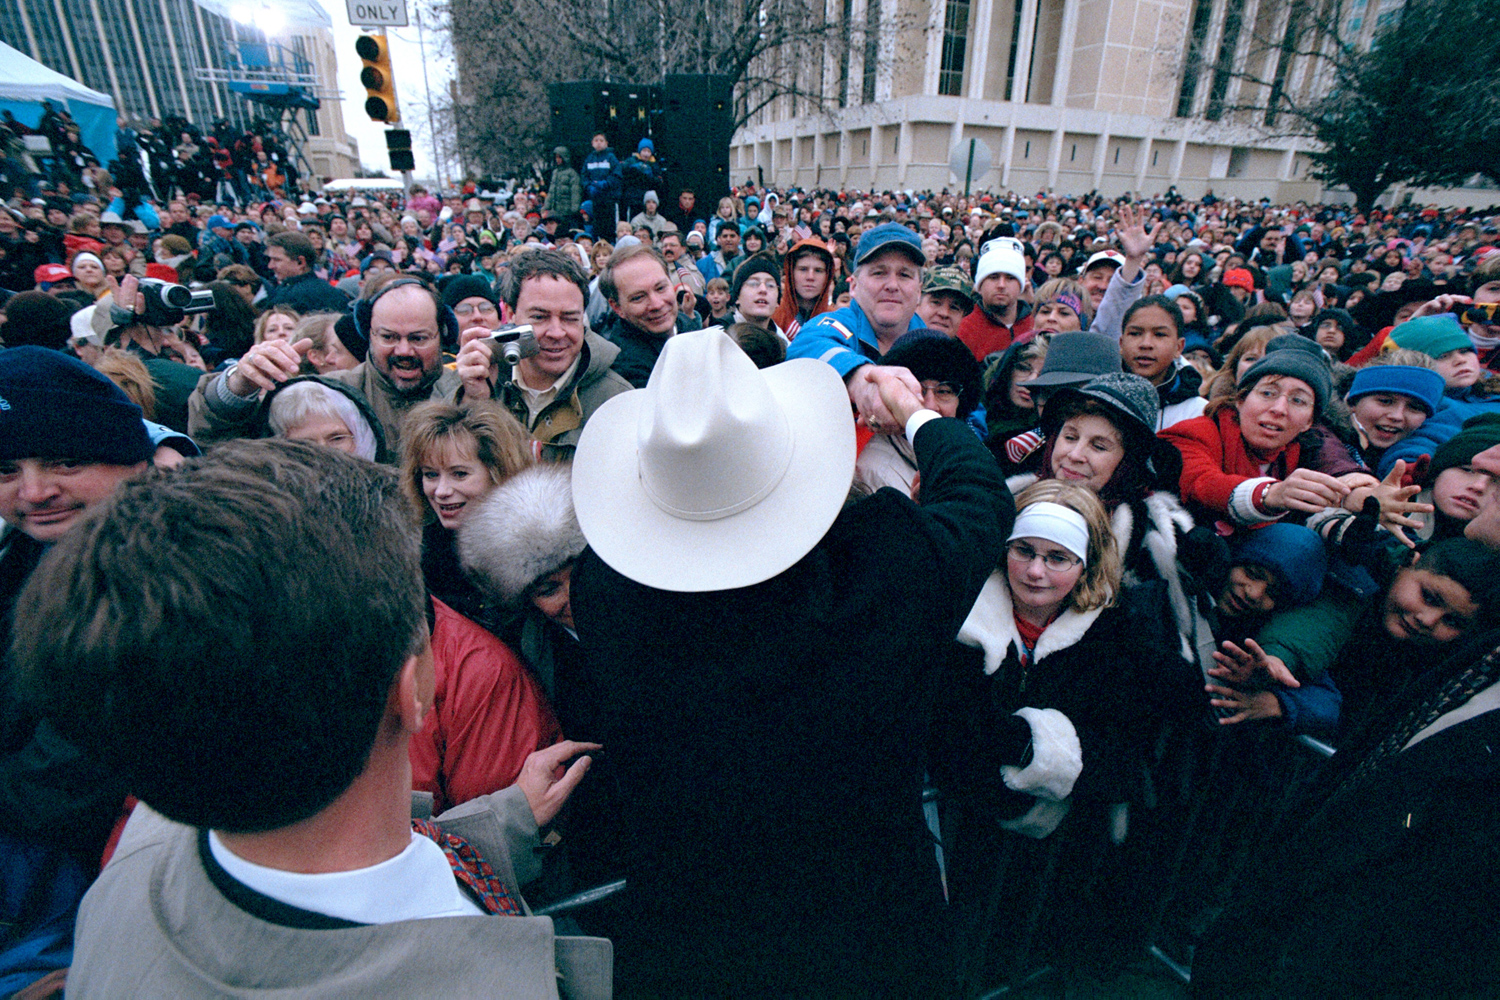 Jan. 17, 2001. President Elect George W. Bush greets and audience of friends and family in downtown Midland during a send-off rally before leaving for Washington D.C.